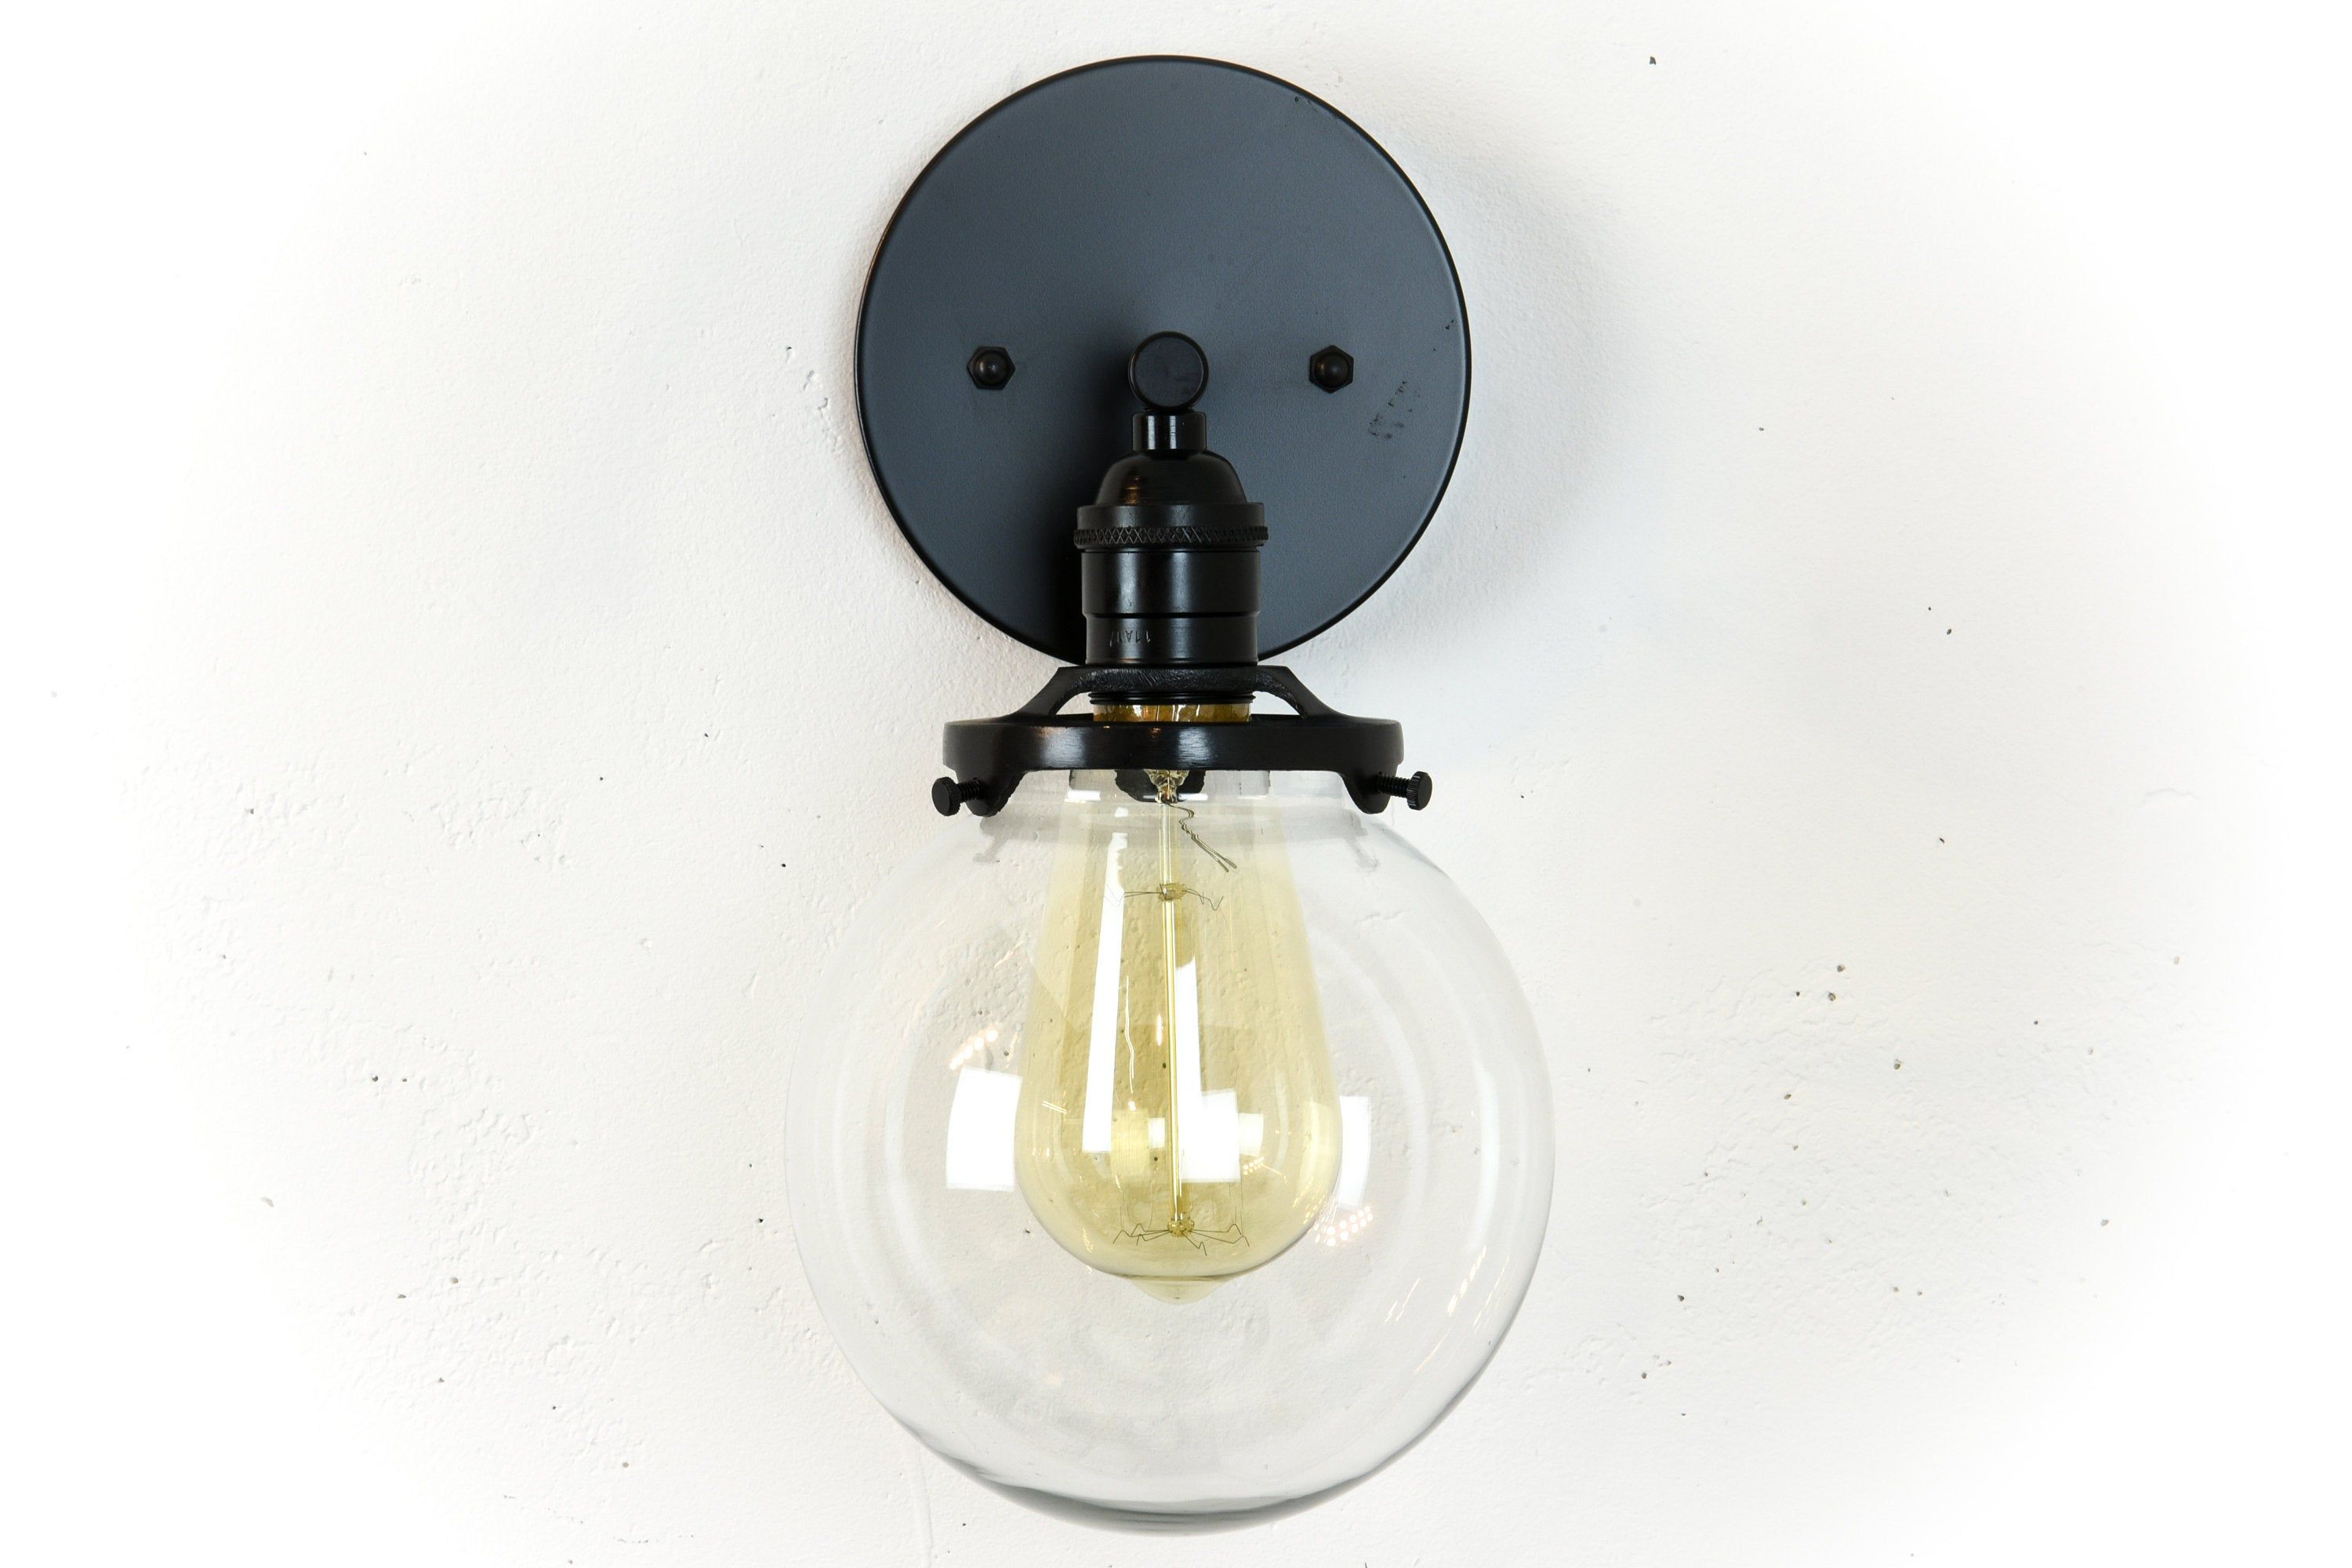 Bathroom Vanity Globe Mirror Light Fixture Matte Black Modern Wall Lamp Mirror With Lights Bathroom Wall Sconces